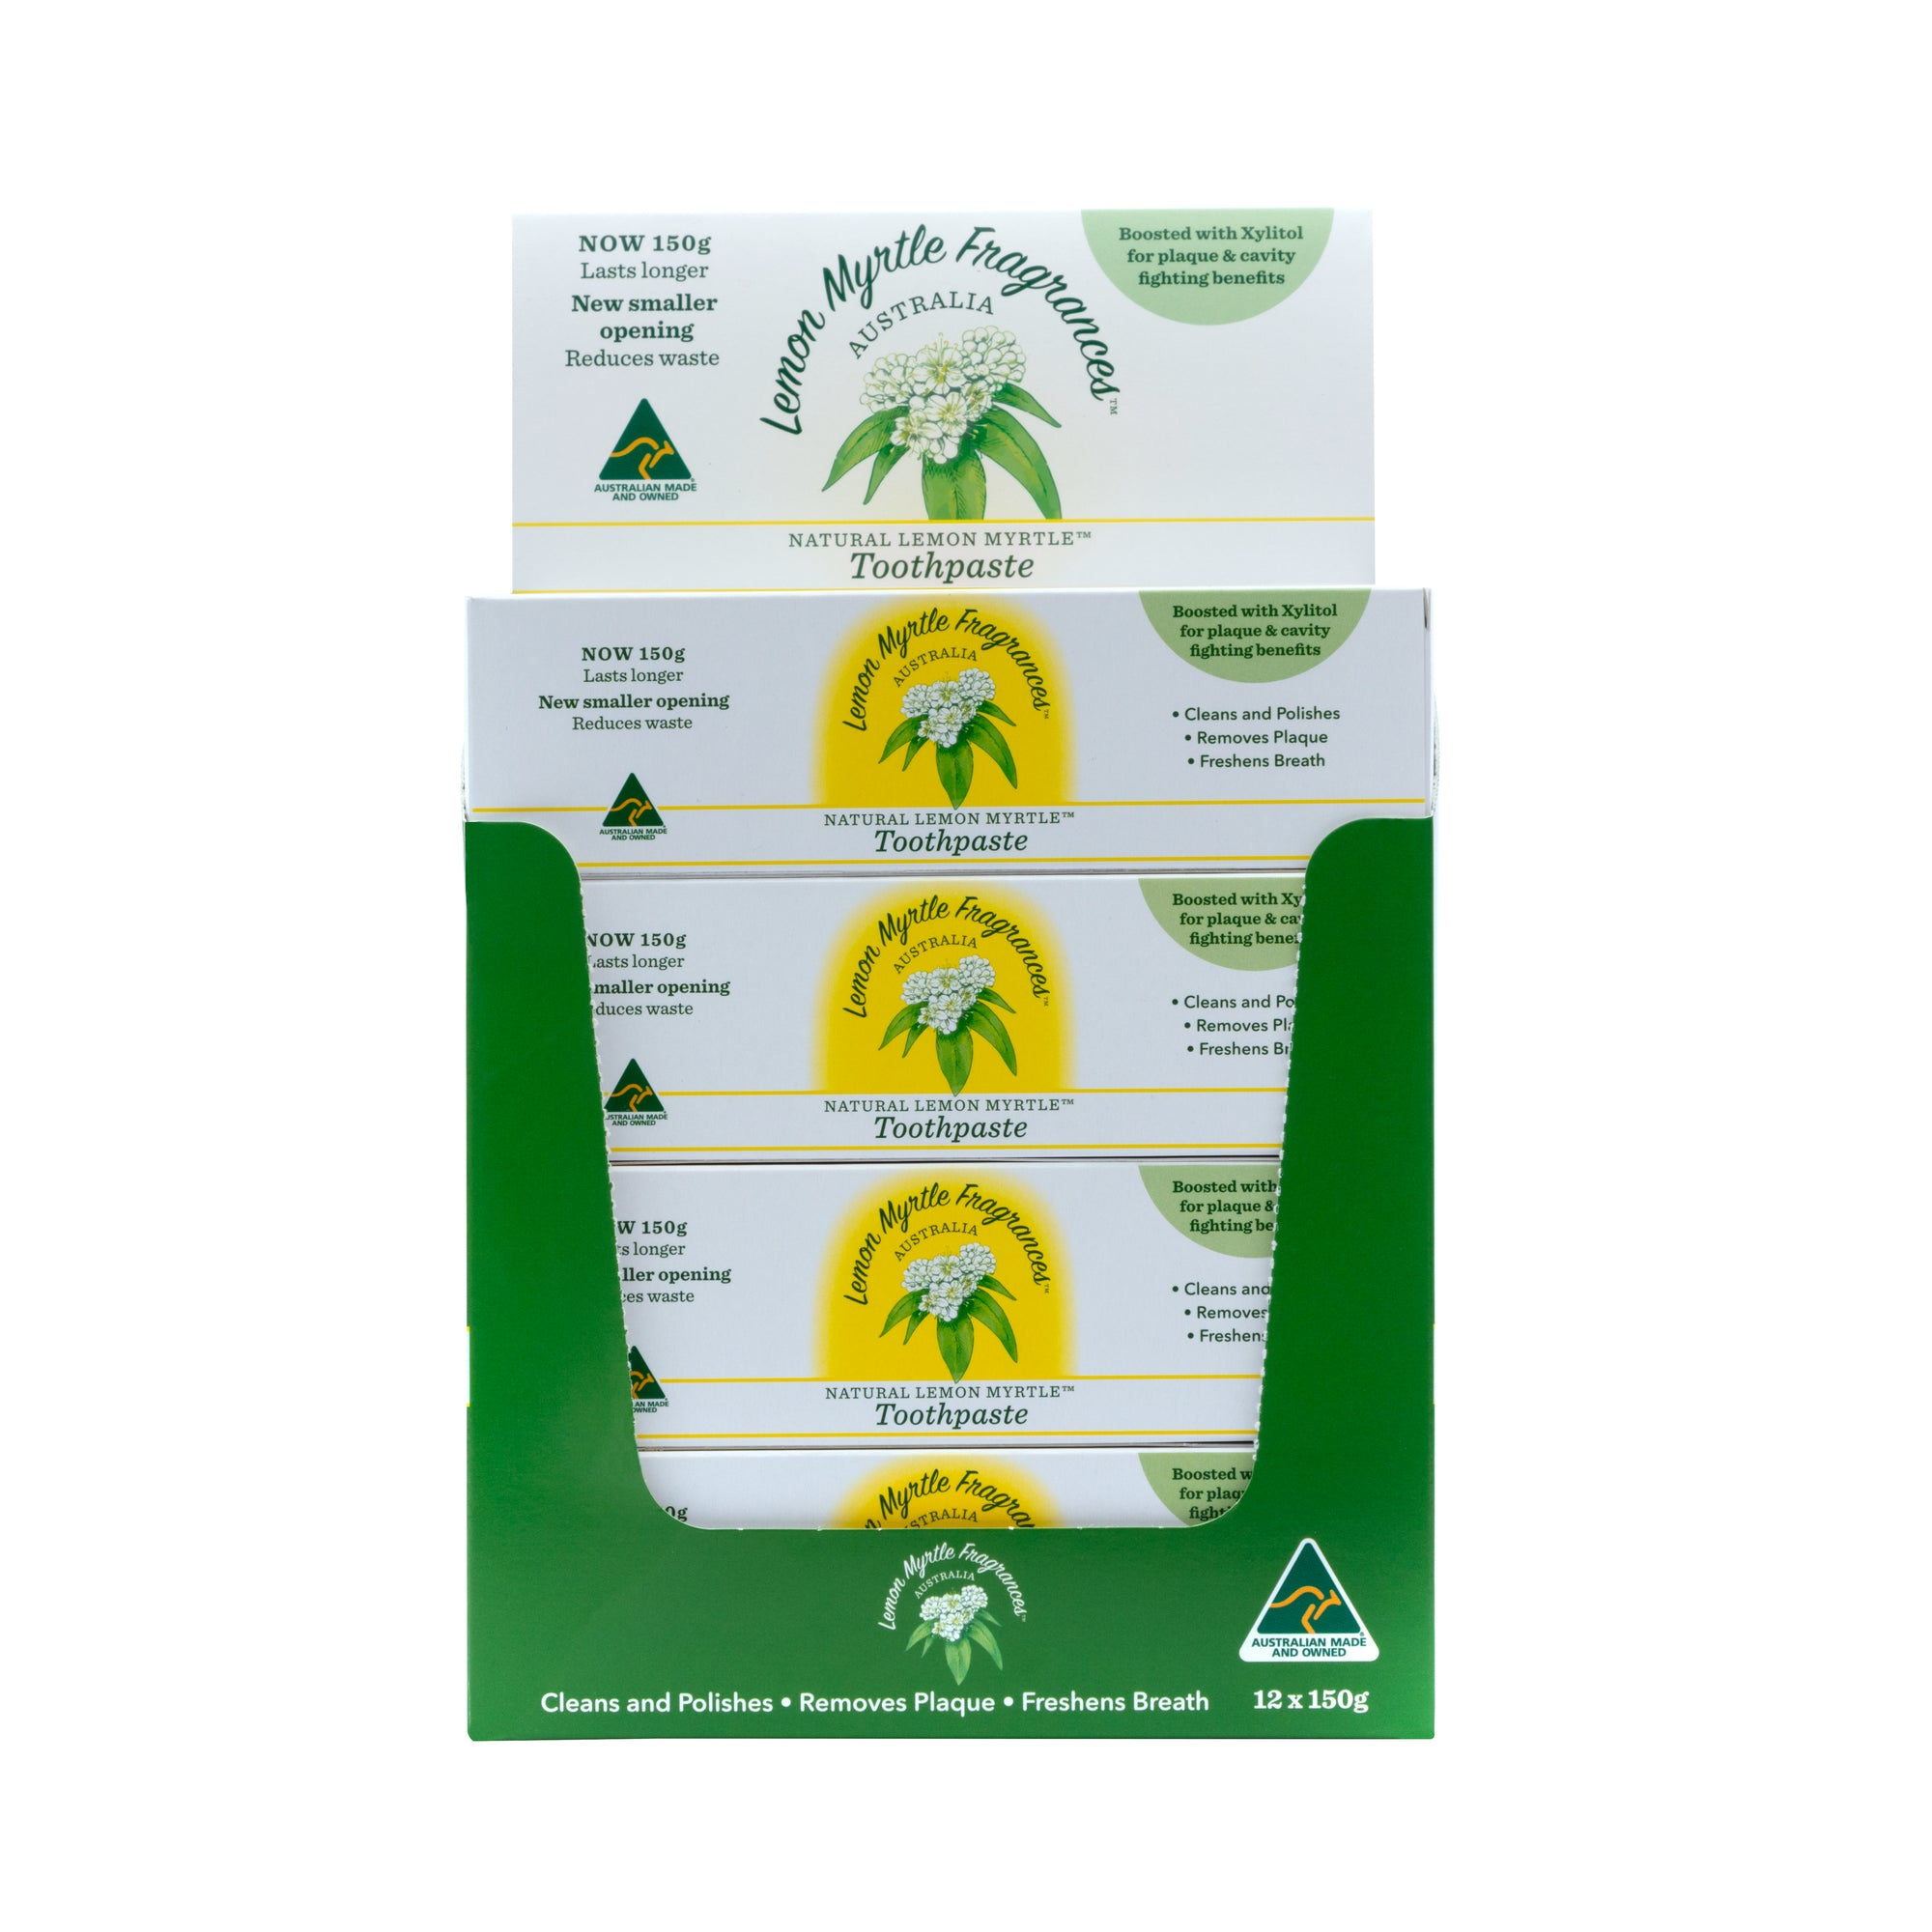 Natural Lemon Myrtle Toothpaste CDU - 12 Tubes